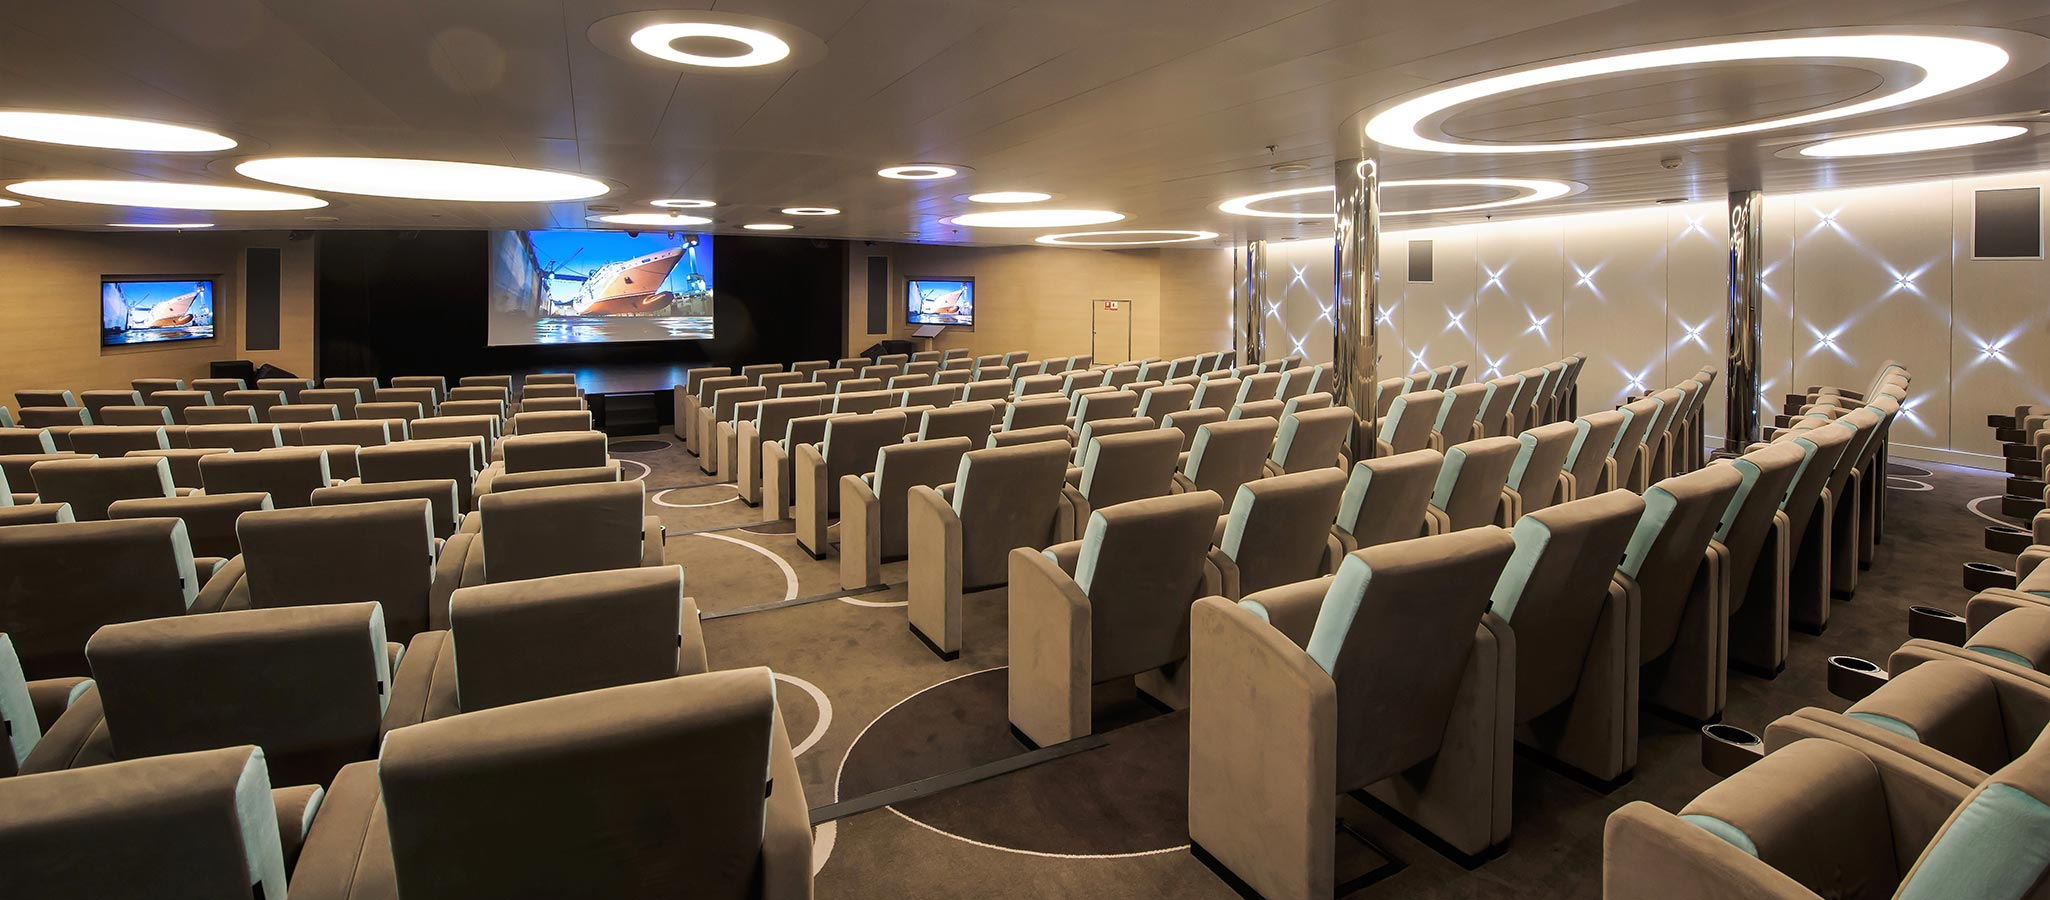 Conference ships are designed specifically for their purpose with show lounges usually accomodating all guests, plenty of break-out areas and state-of-the-art technical facilities.